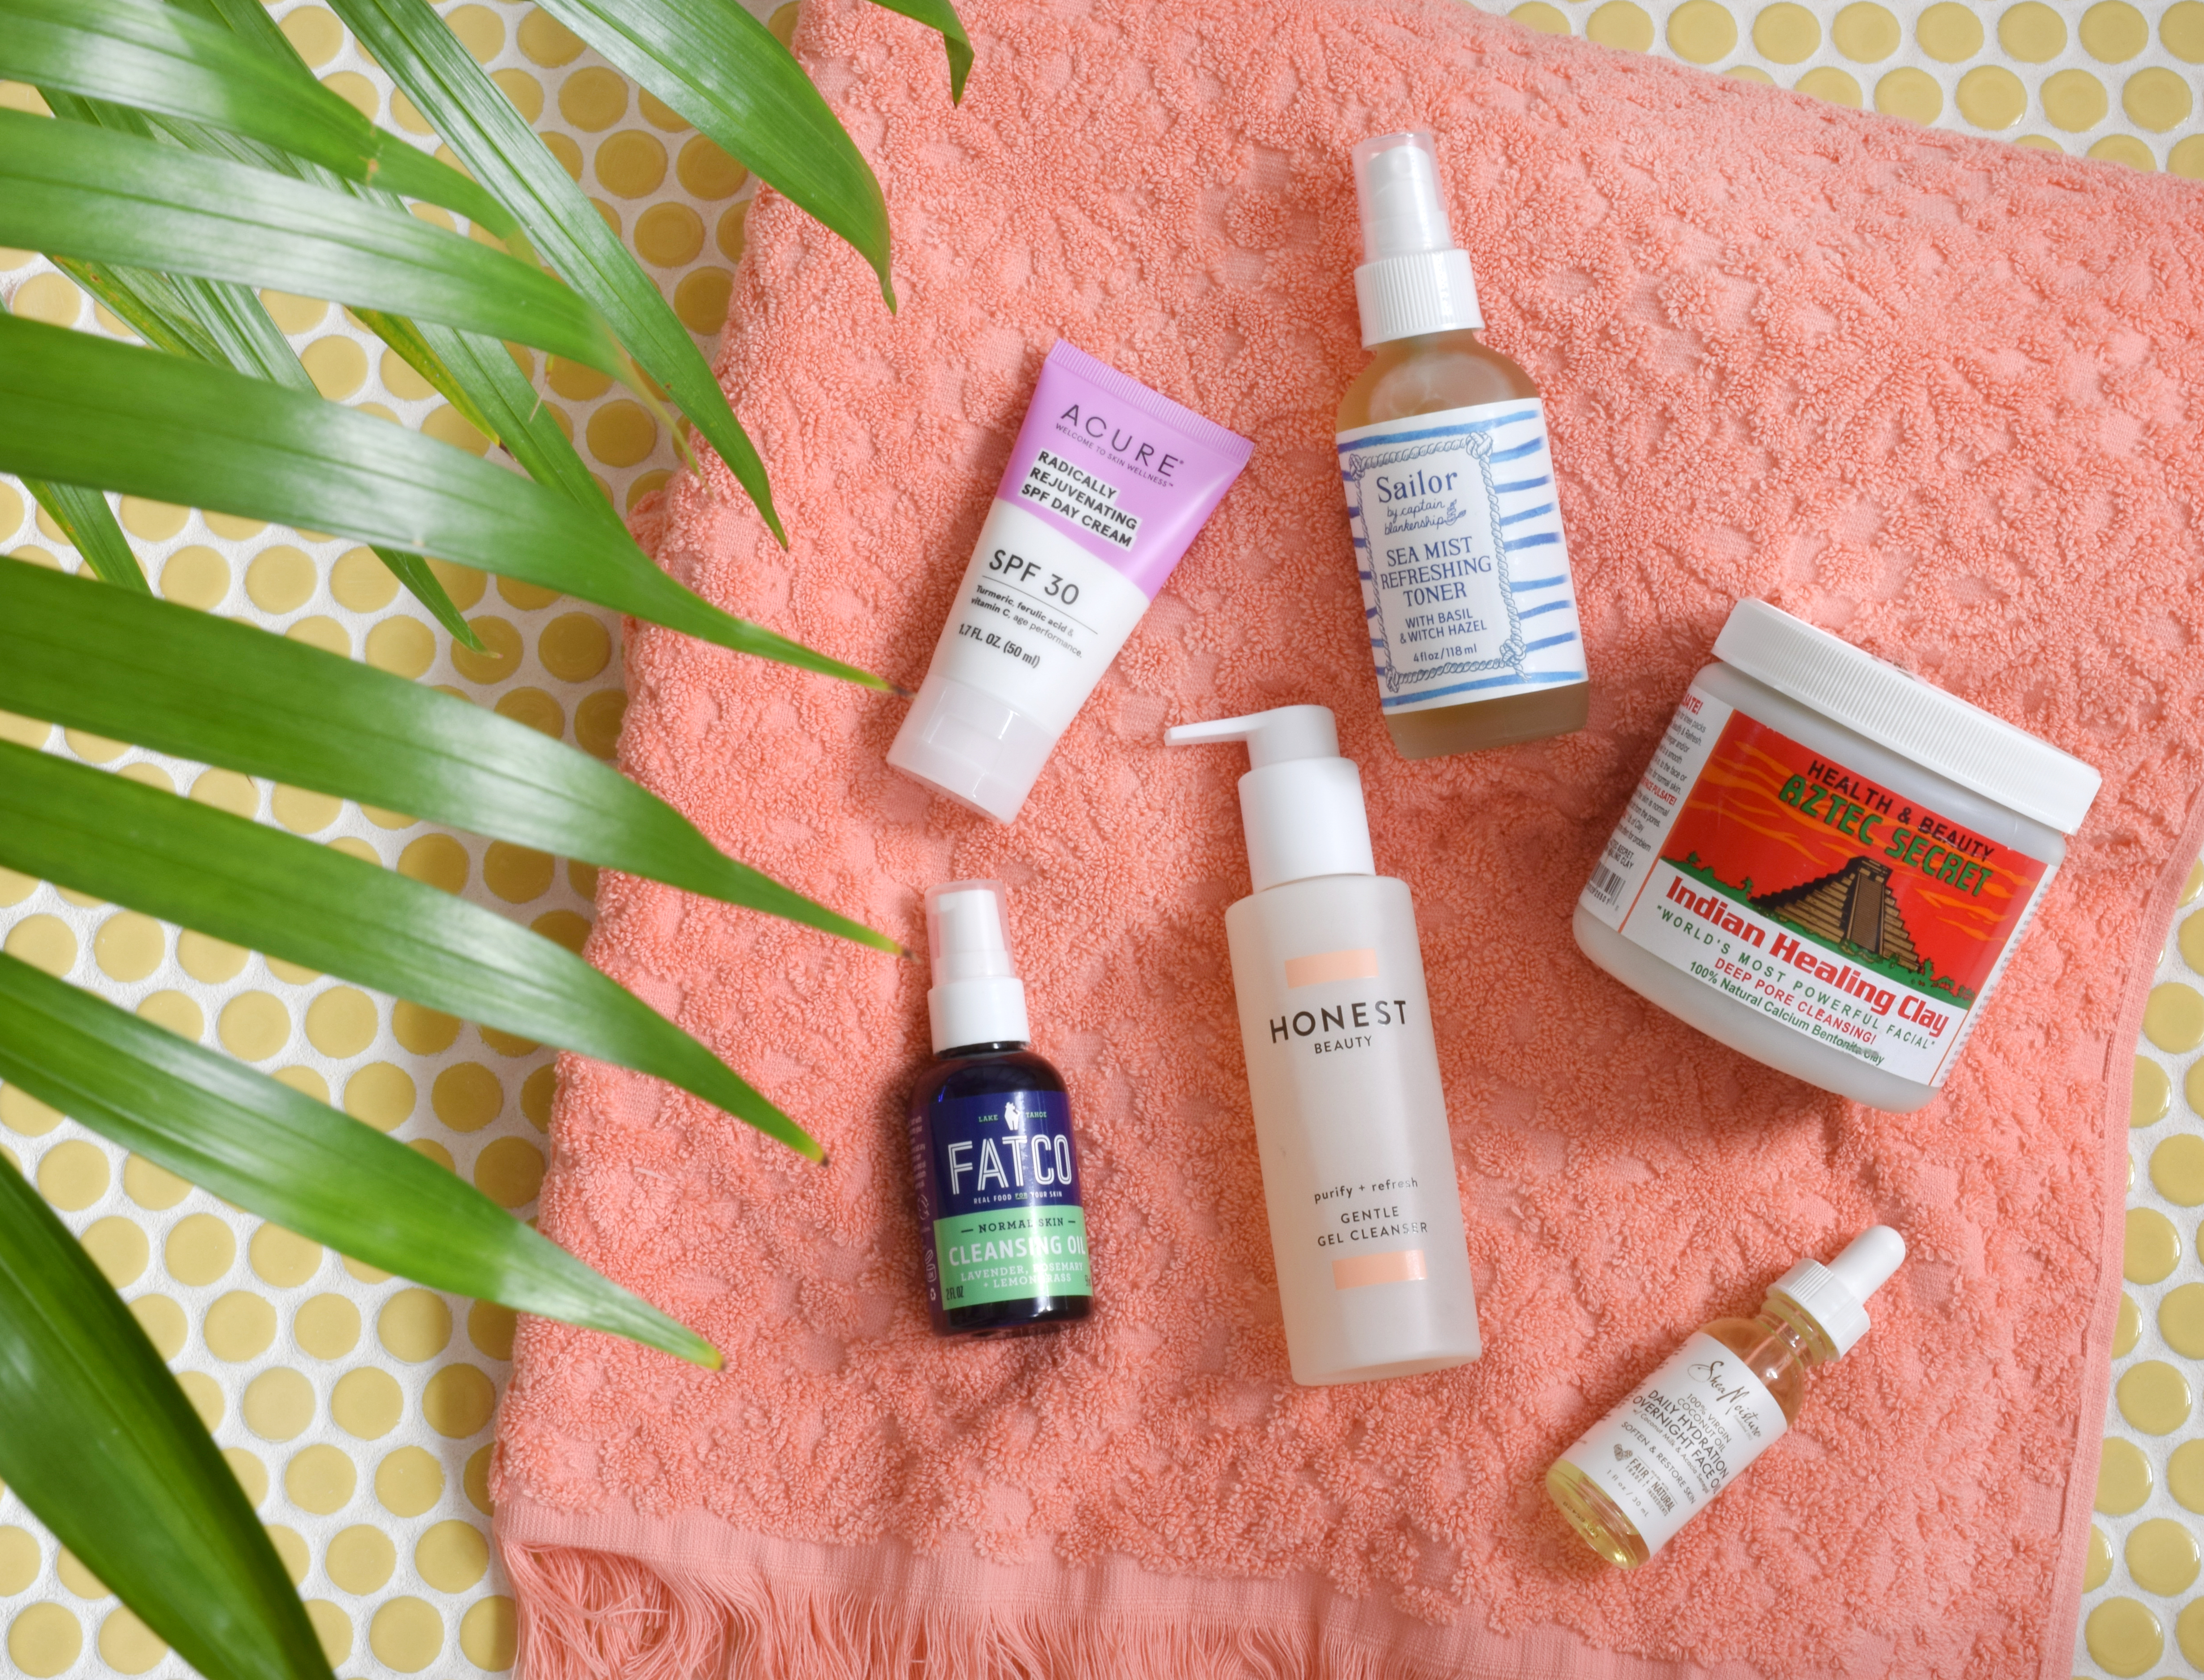 Six-Step Natural Skincare Routine from Target!